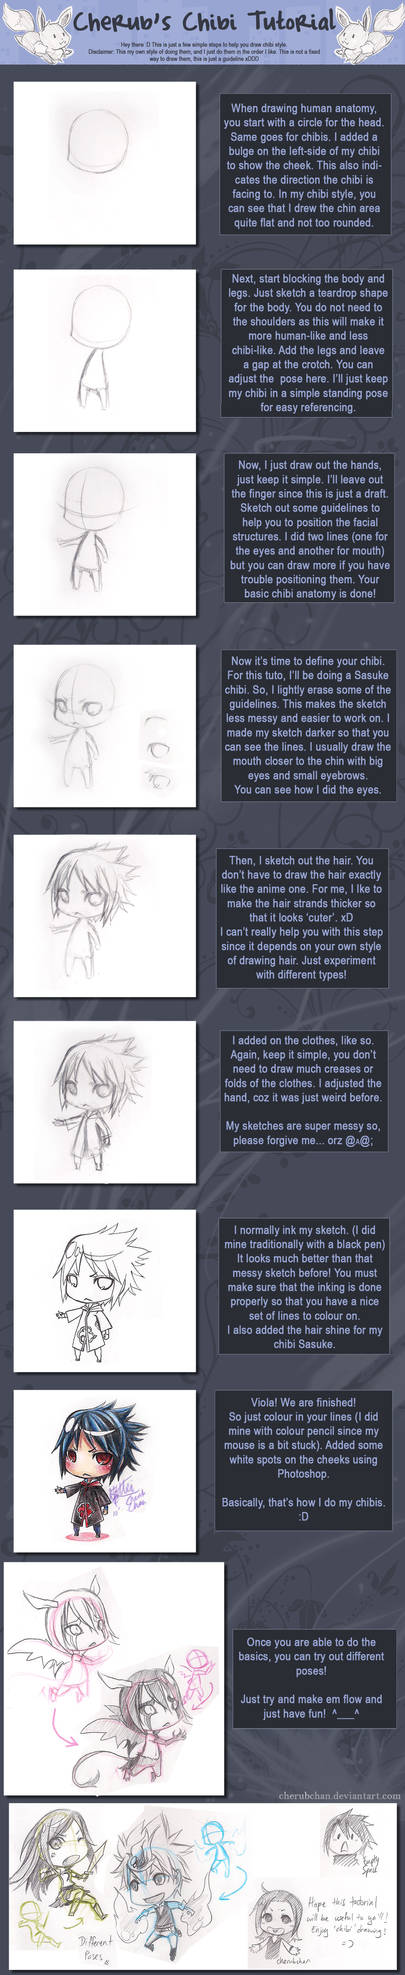 Chibi Tutorial by cherubchan